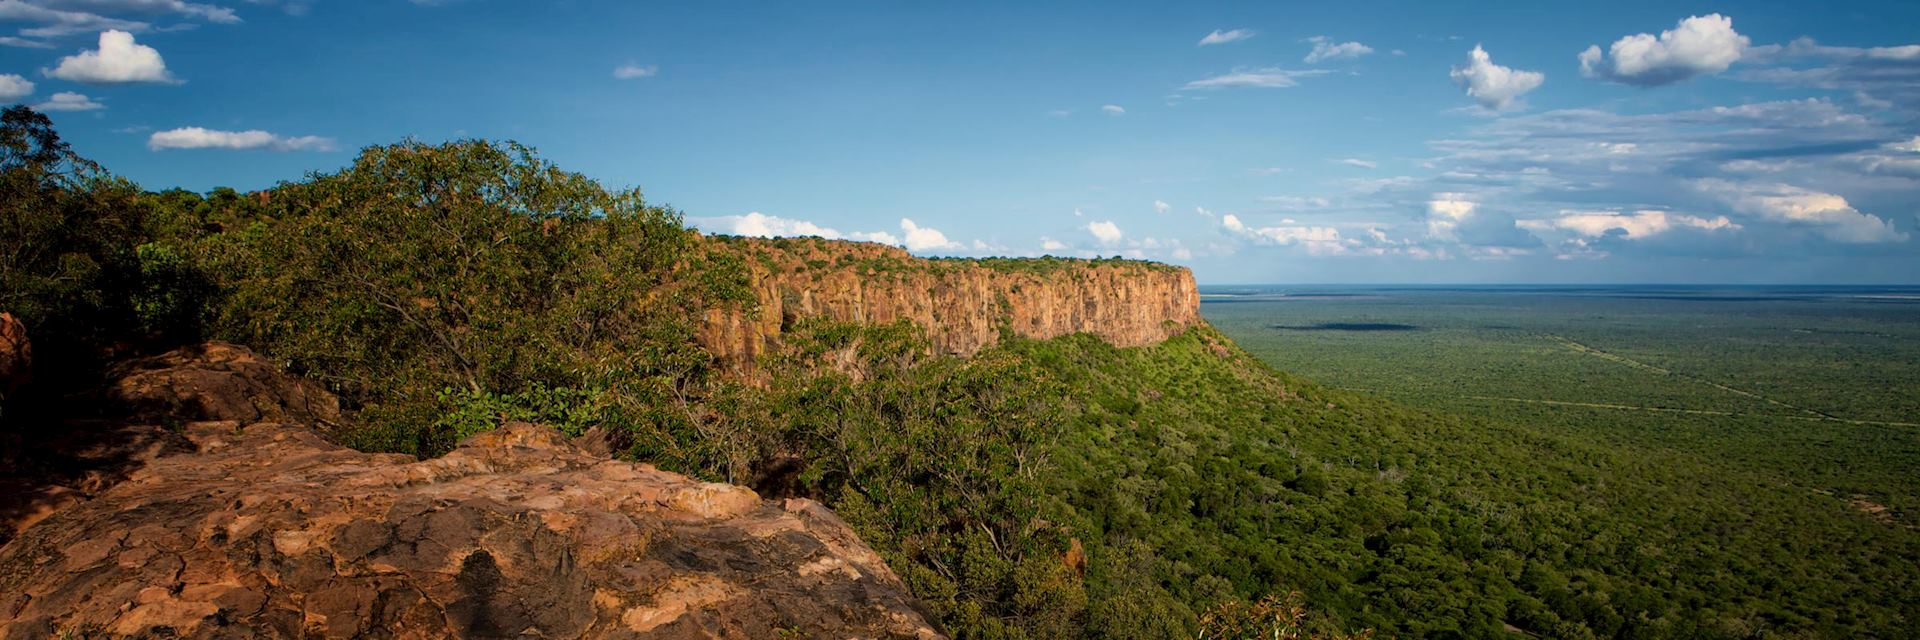 Waterberg Plateau, South Africa